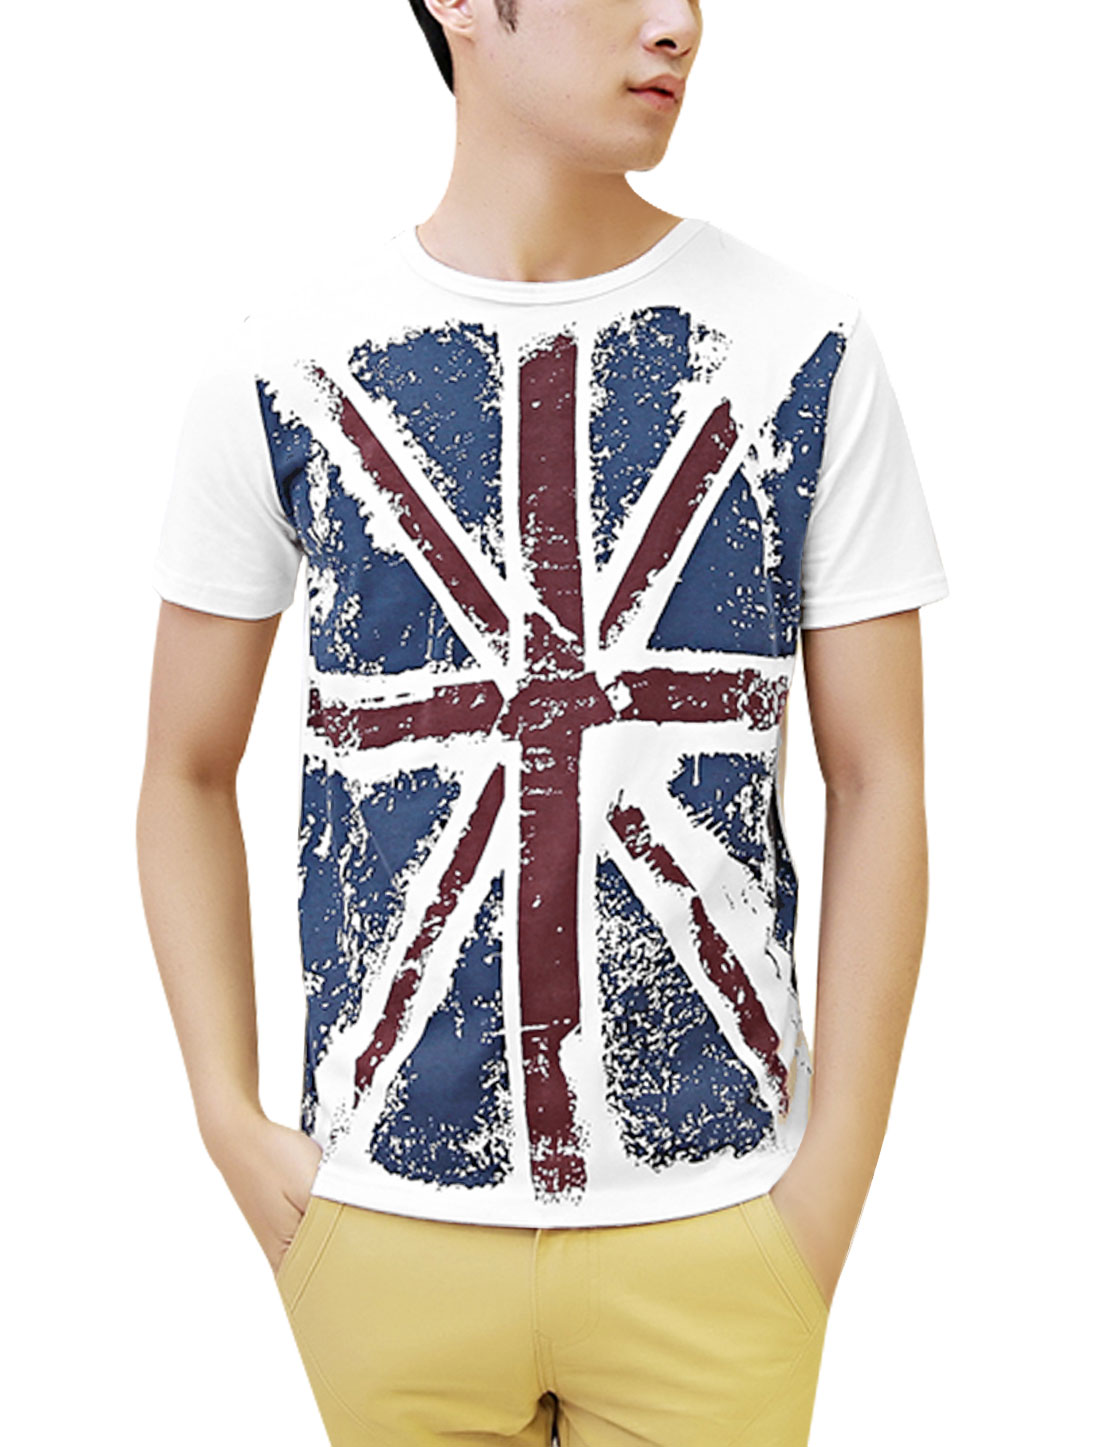 Man British Flag Print Short Sleeve Tee Shirt White L